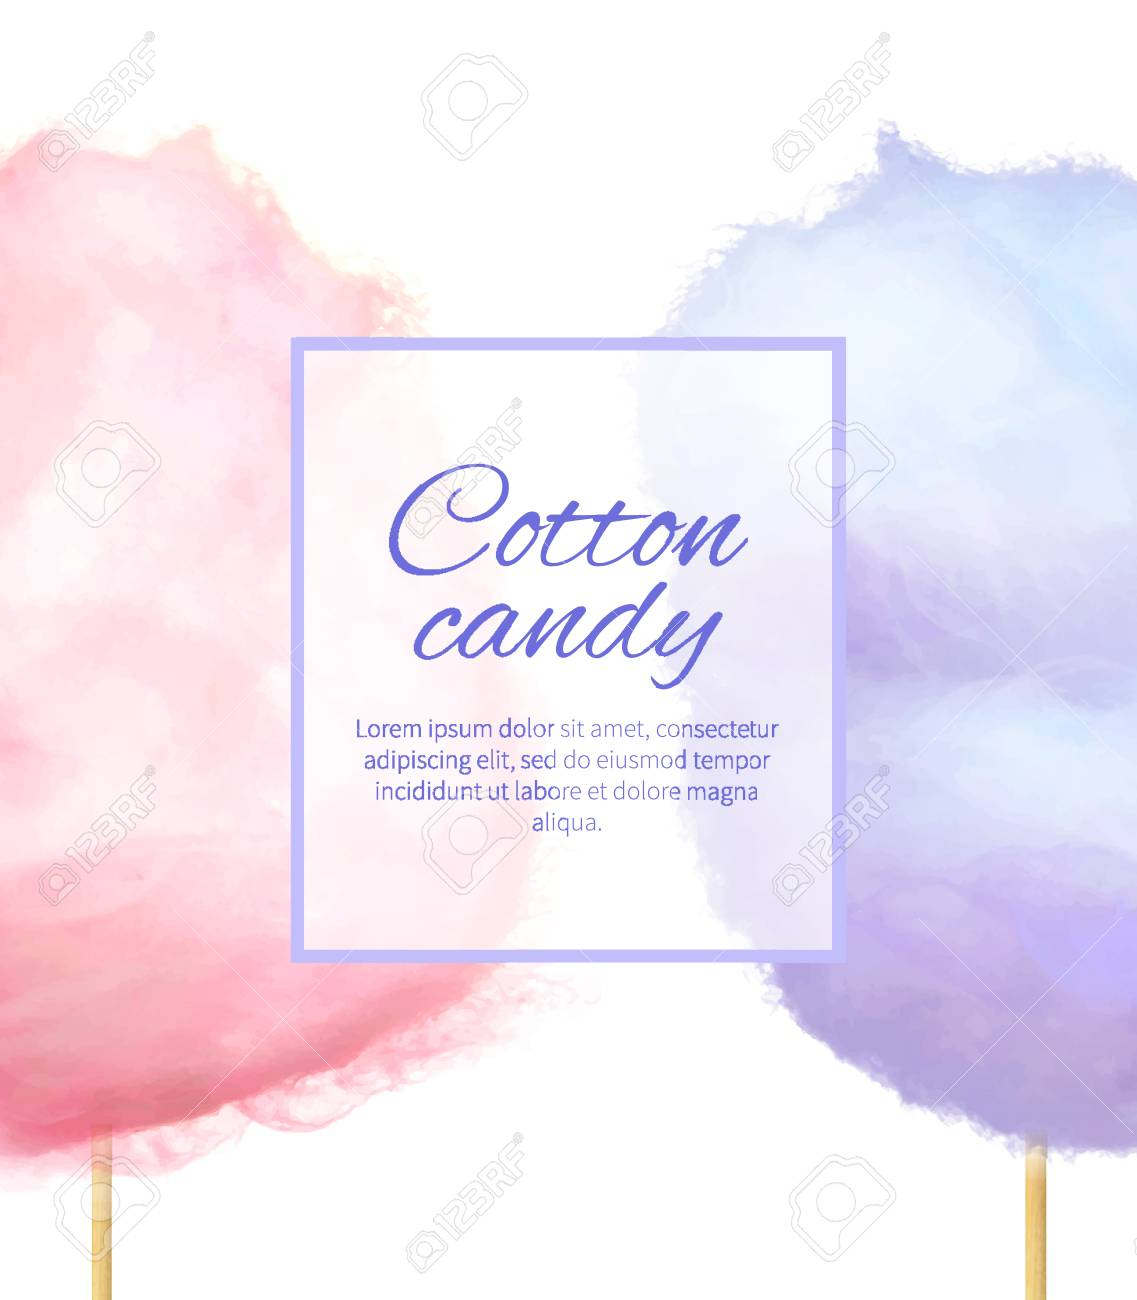 Cotton Candy Banner with Sweet Floss Spun Sugar